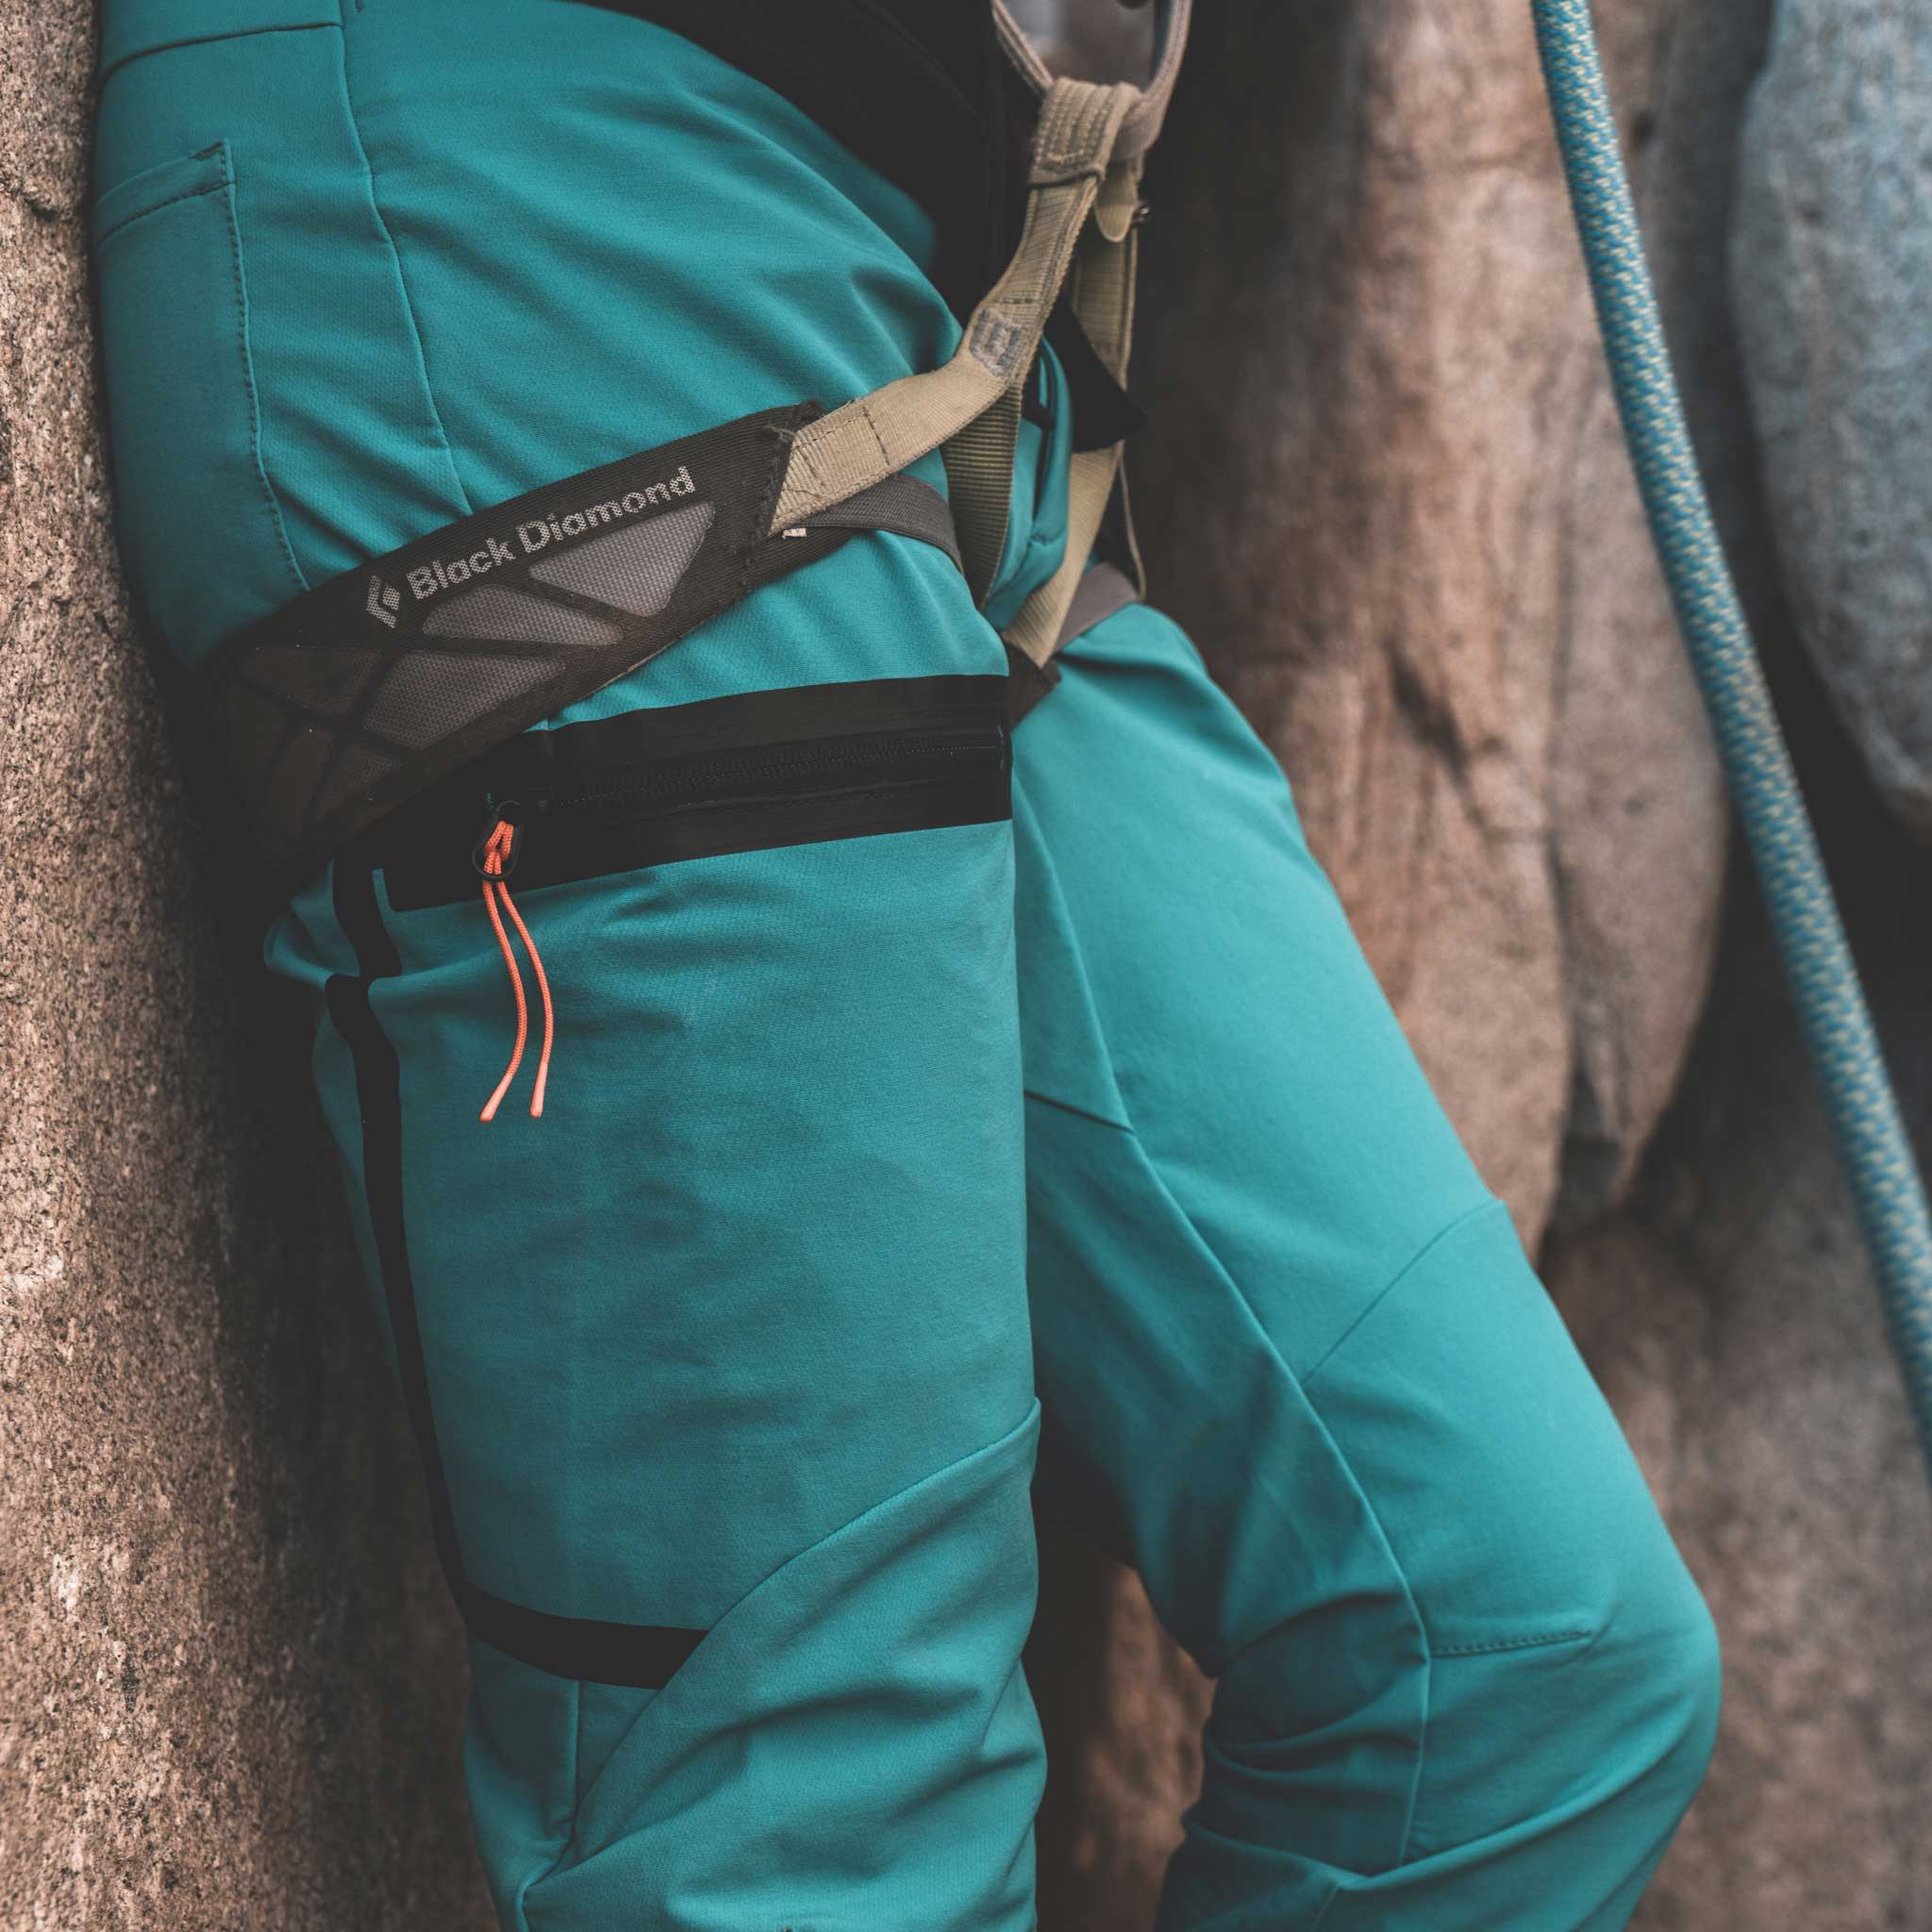 Man belaying rock climber wearing Foehn Brise Pant